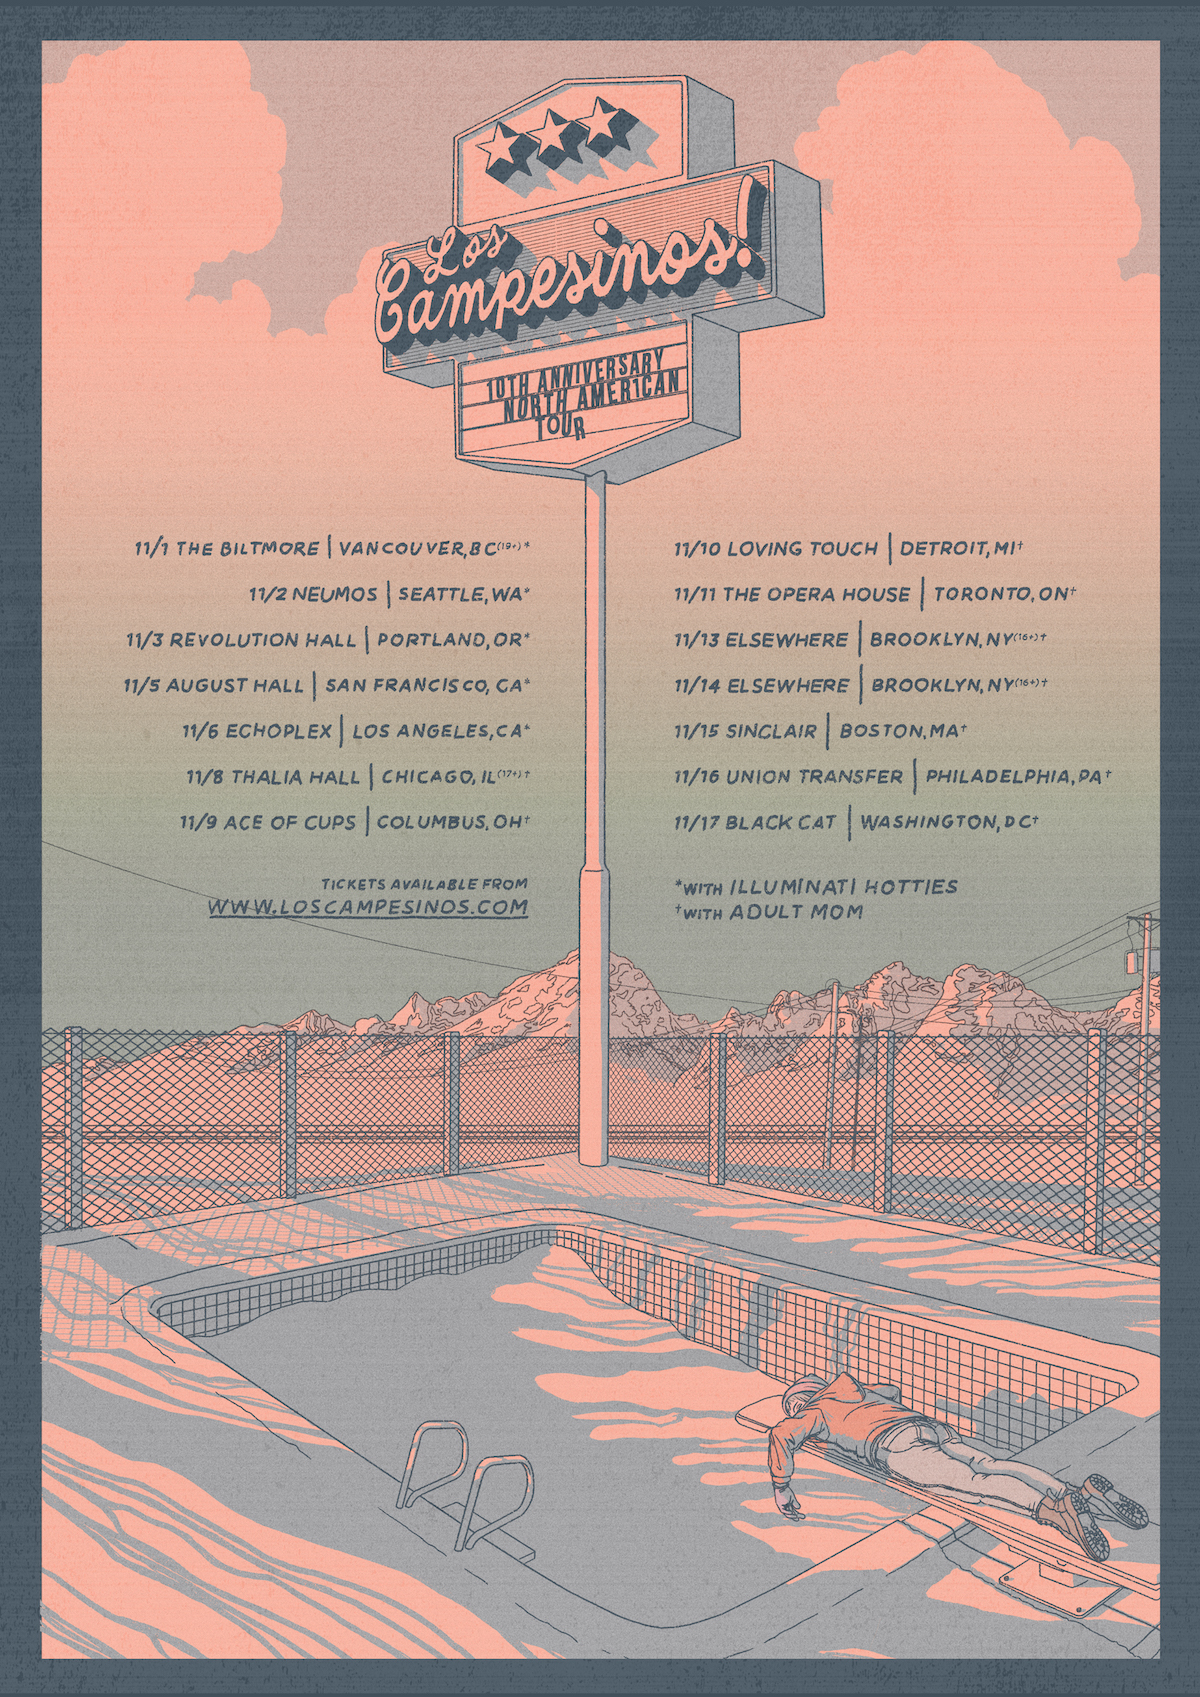 Los Camp! Play North American Tour in November — Los Campesinos!